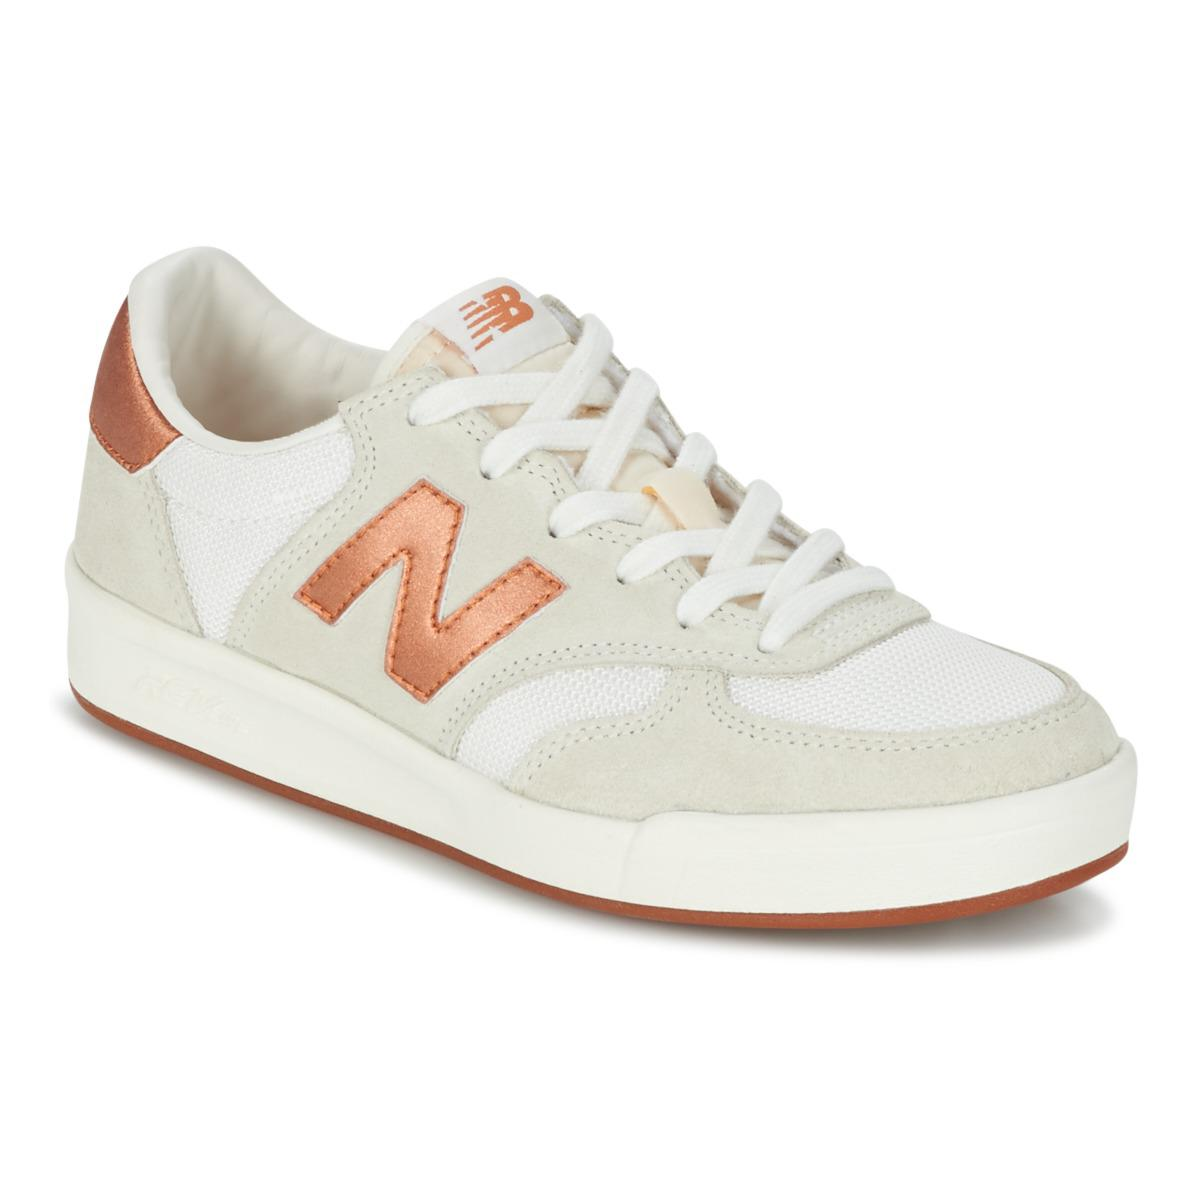 49b30533d27 New Balance Wrt300 Shoes (trainers) in White - Lyst